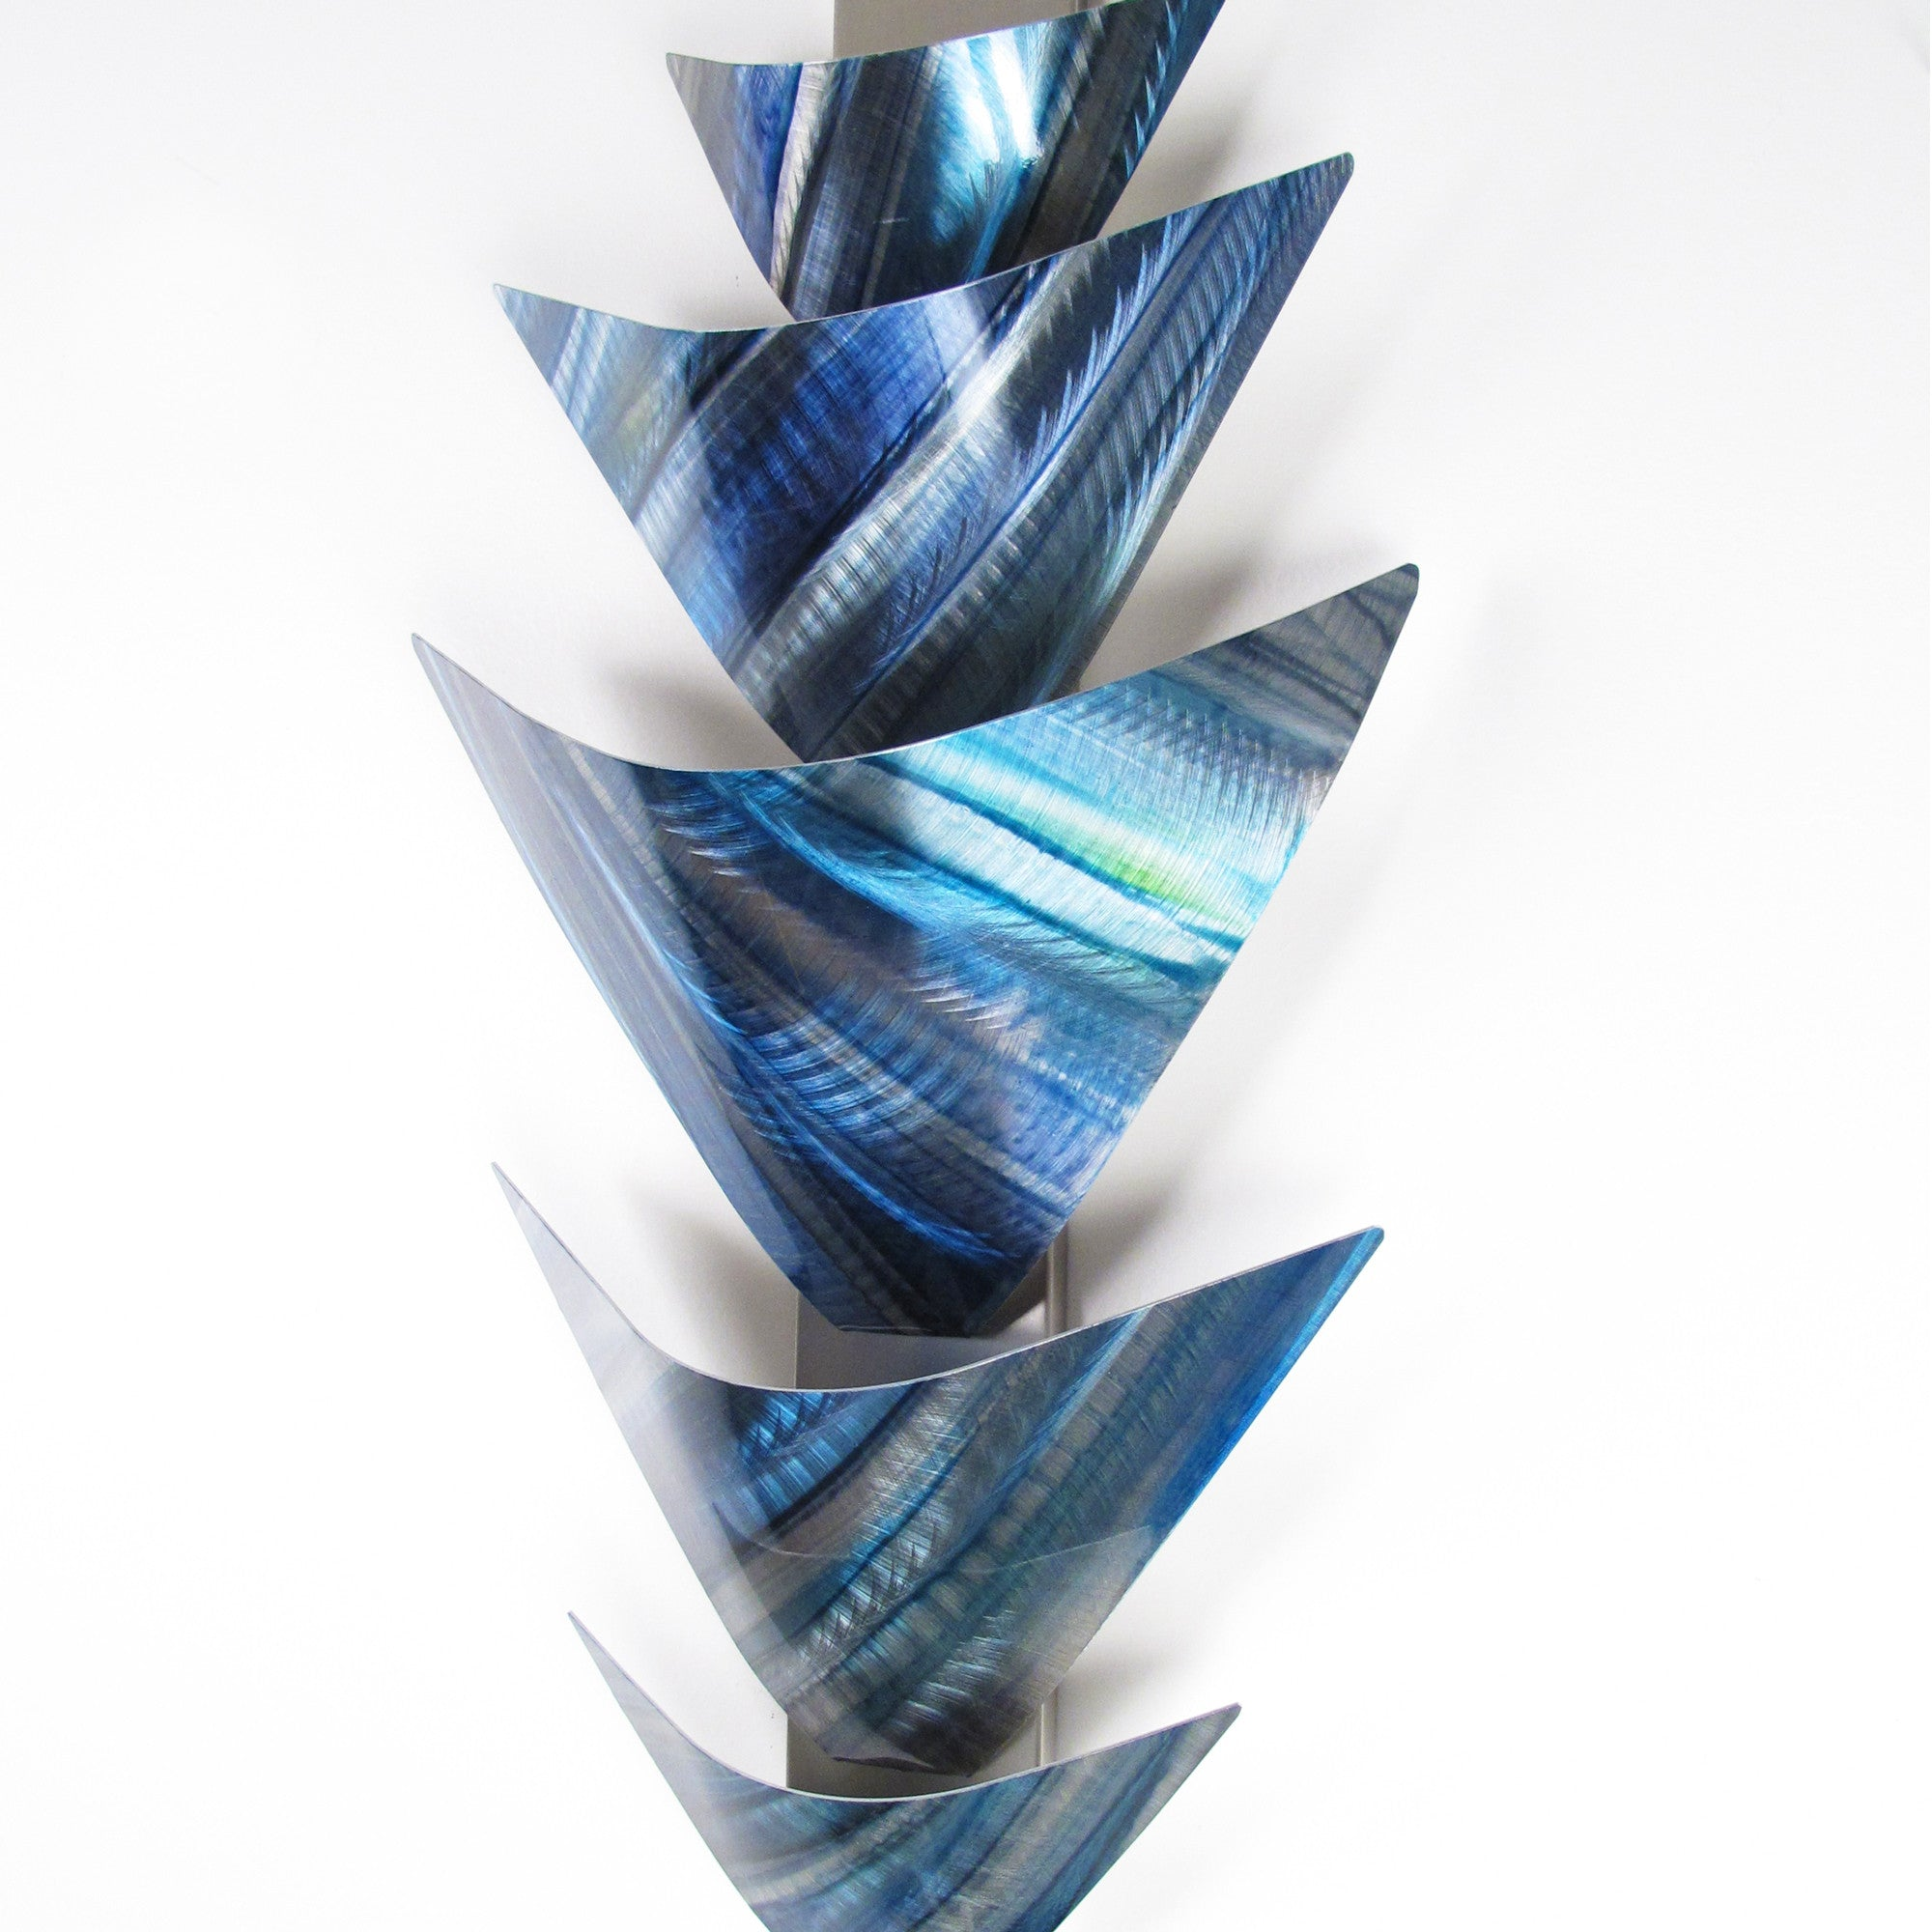 "Blue Metal Wall Decor Beauteous Aurora Torchiere Series"" 40""x24"" Modern Abstract Metal Wall Art Design Inspiration"